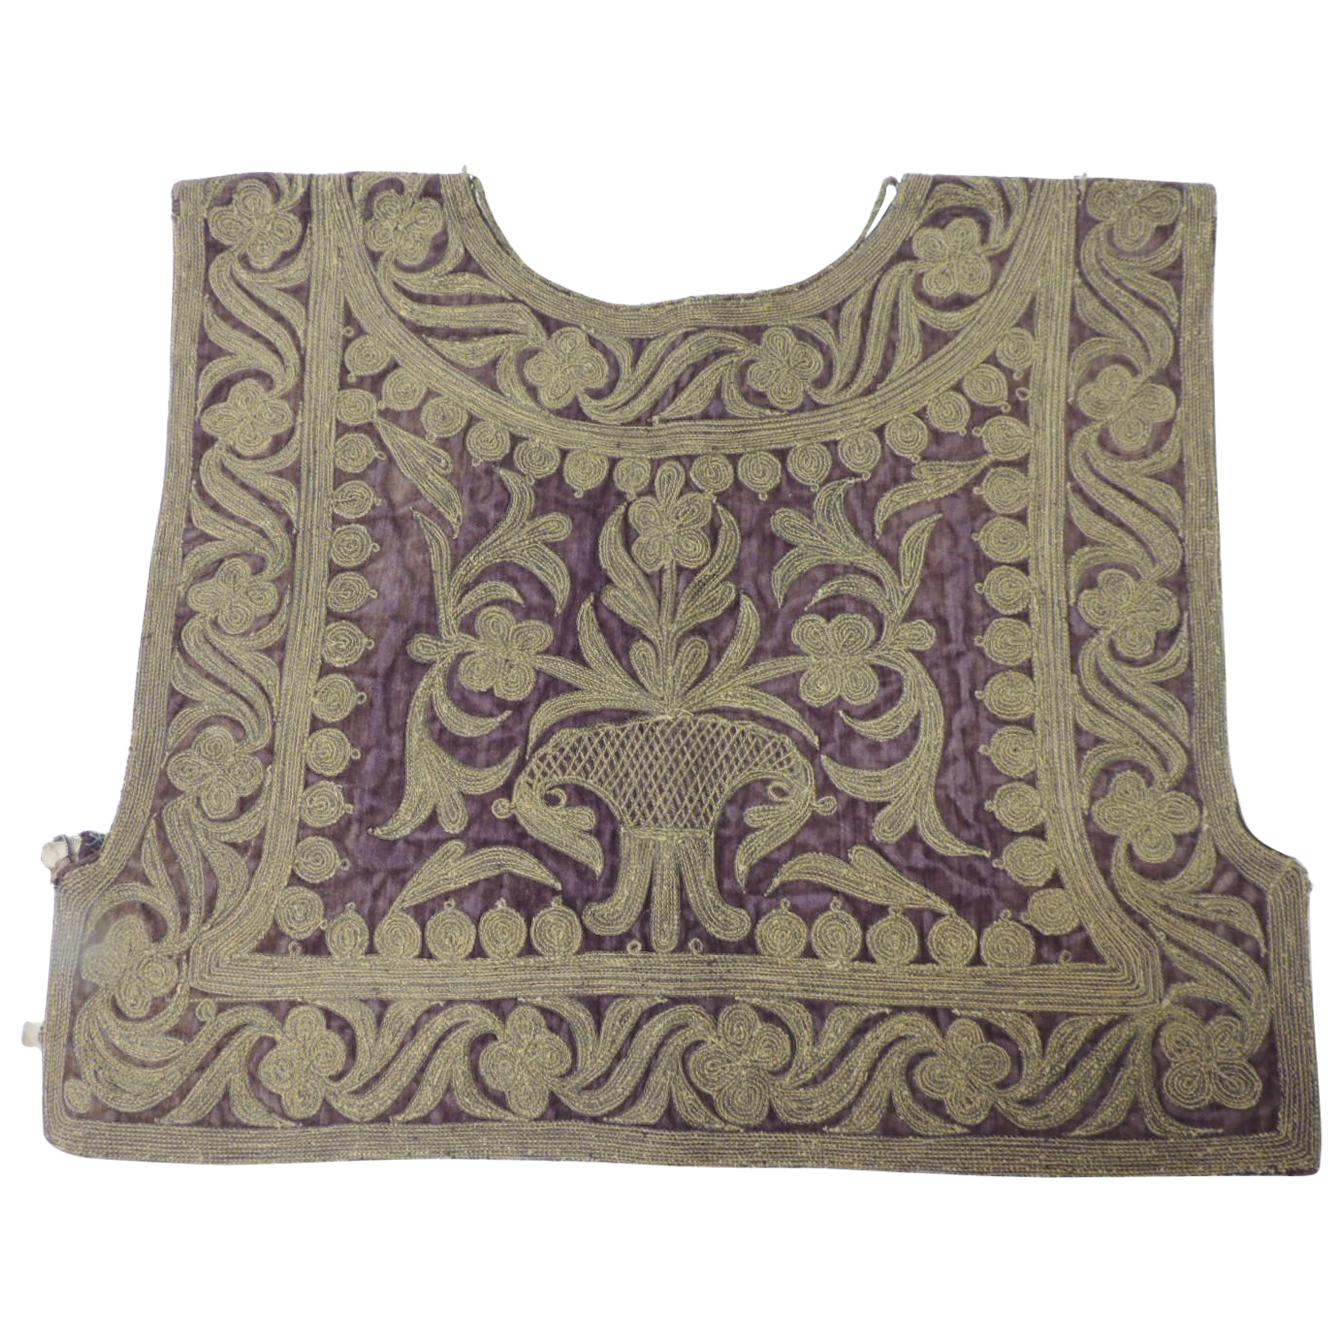 19th Century Ottoman Empire Intricate Heavy Embroidered Vest